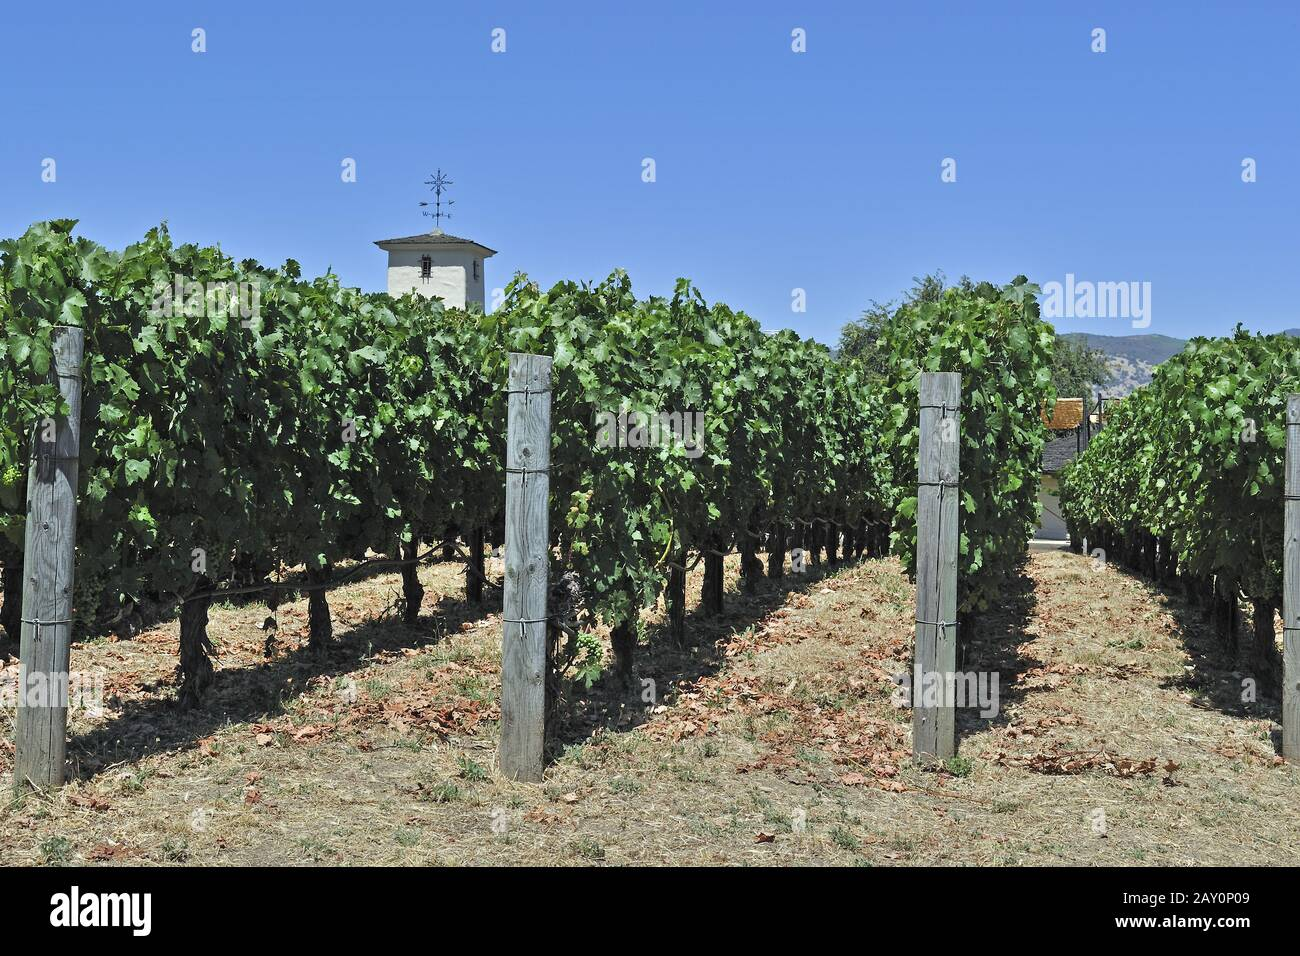 View of the vineyards of Robert Mondavi Winery, Napa Valley, Stock Photo